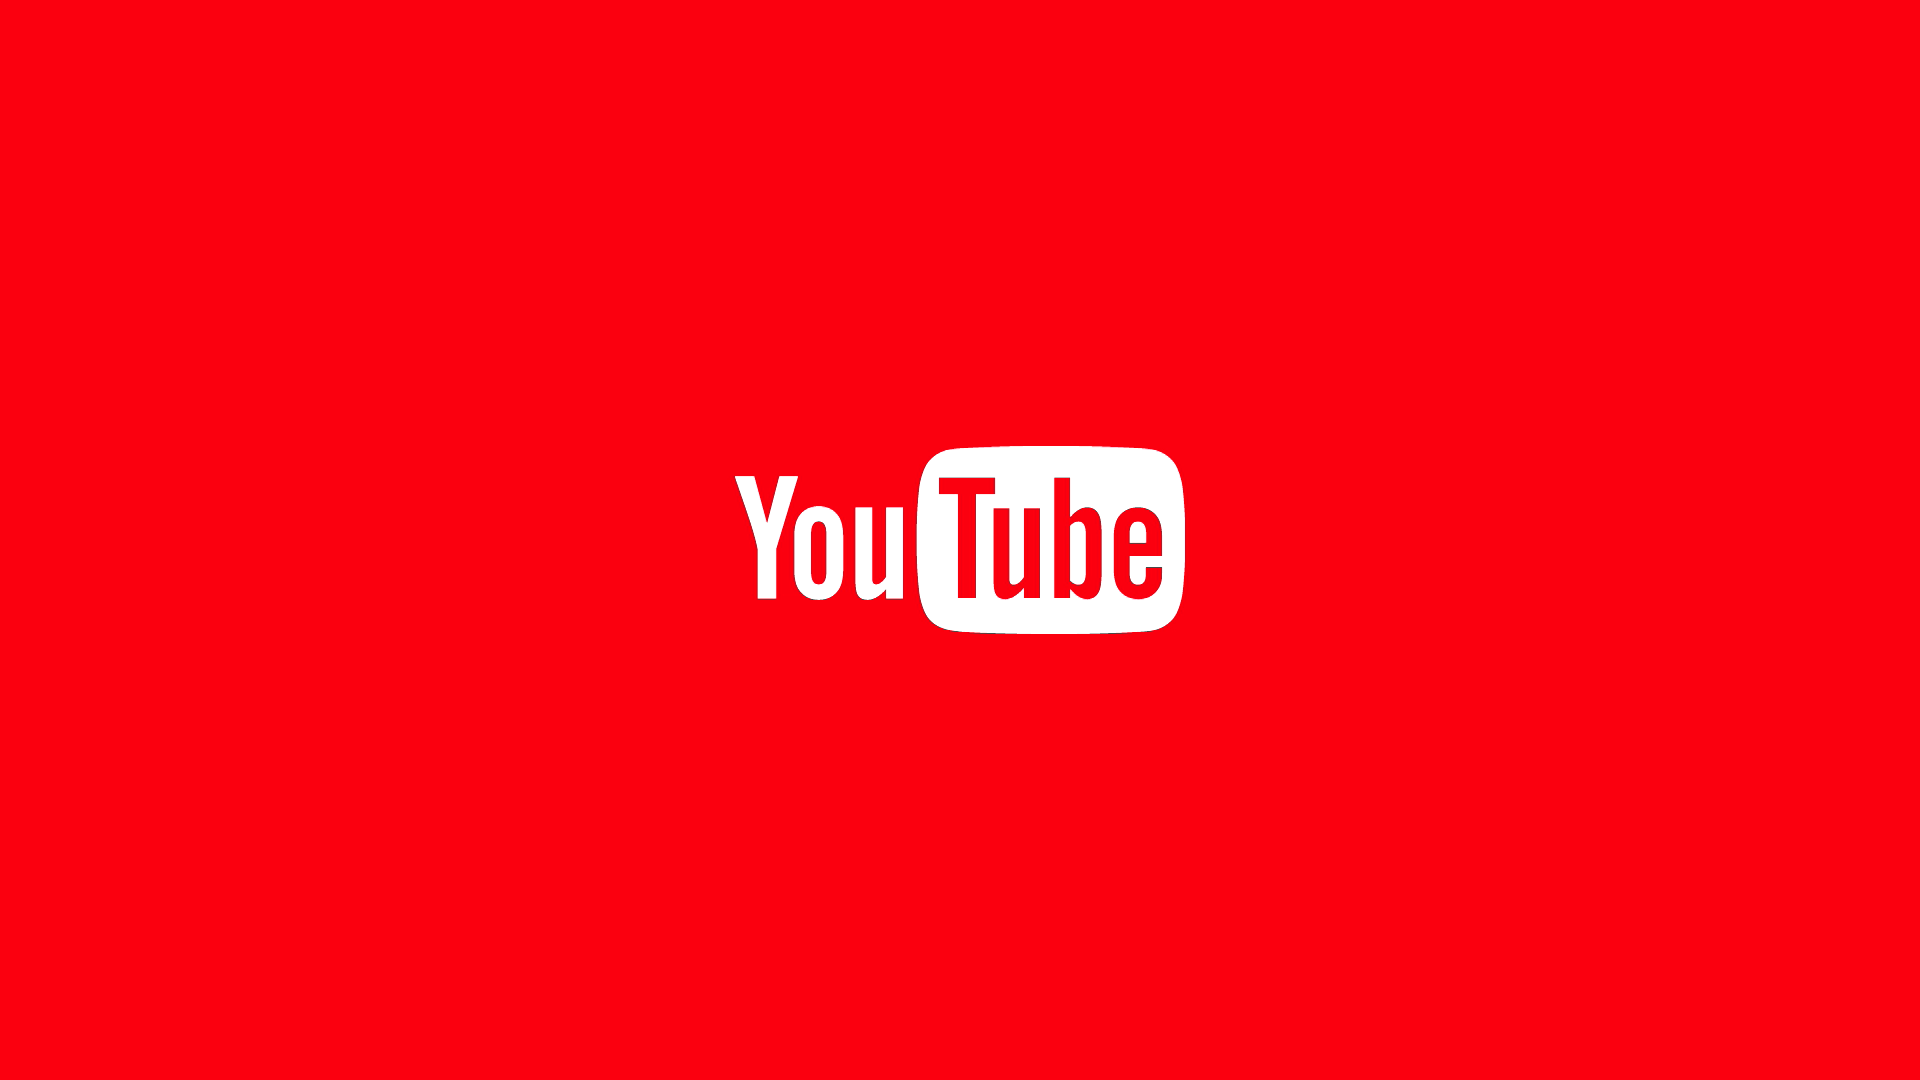 Youtube Mp3 İndir